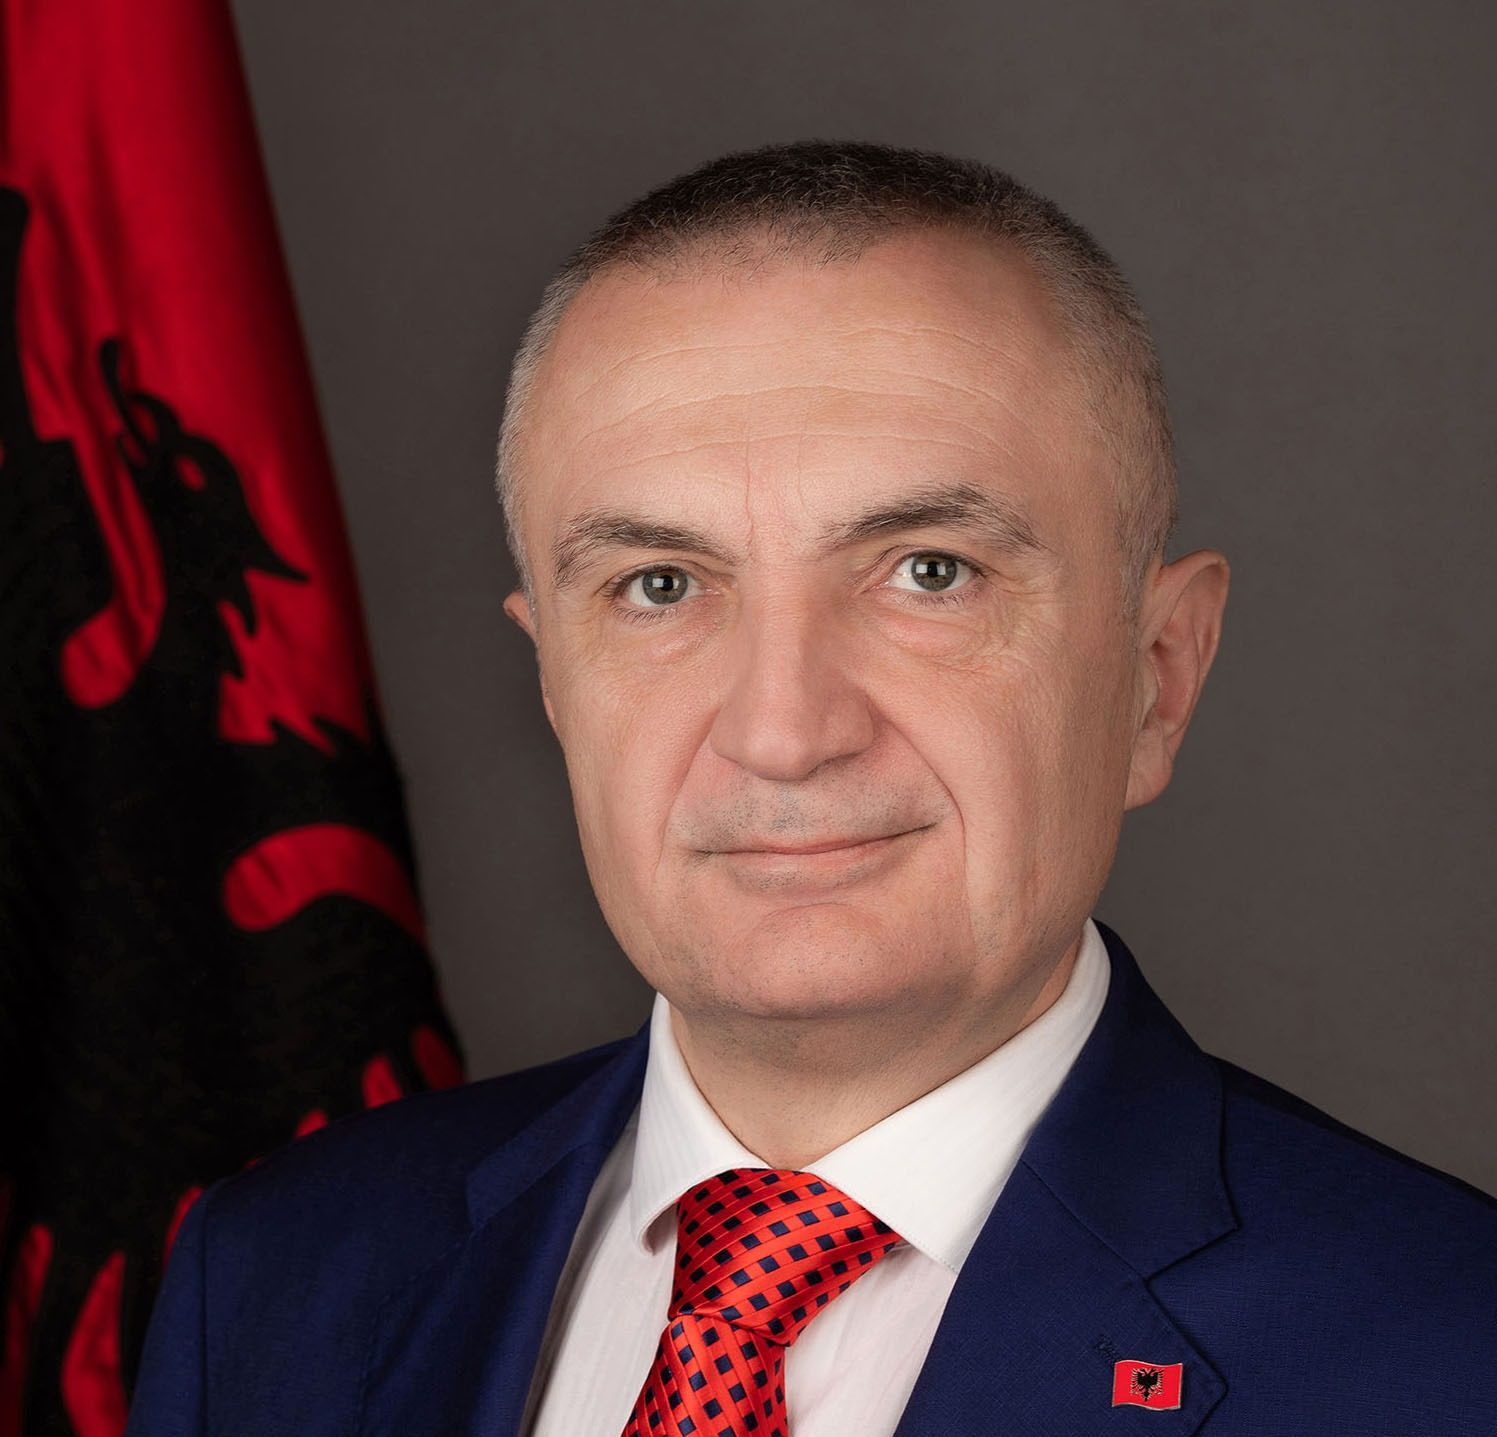 Statement by the President of the Republic, H. E. Ilir Meta